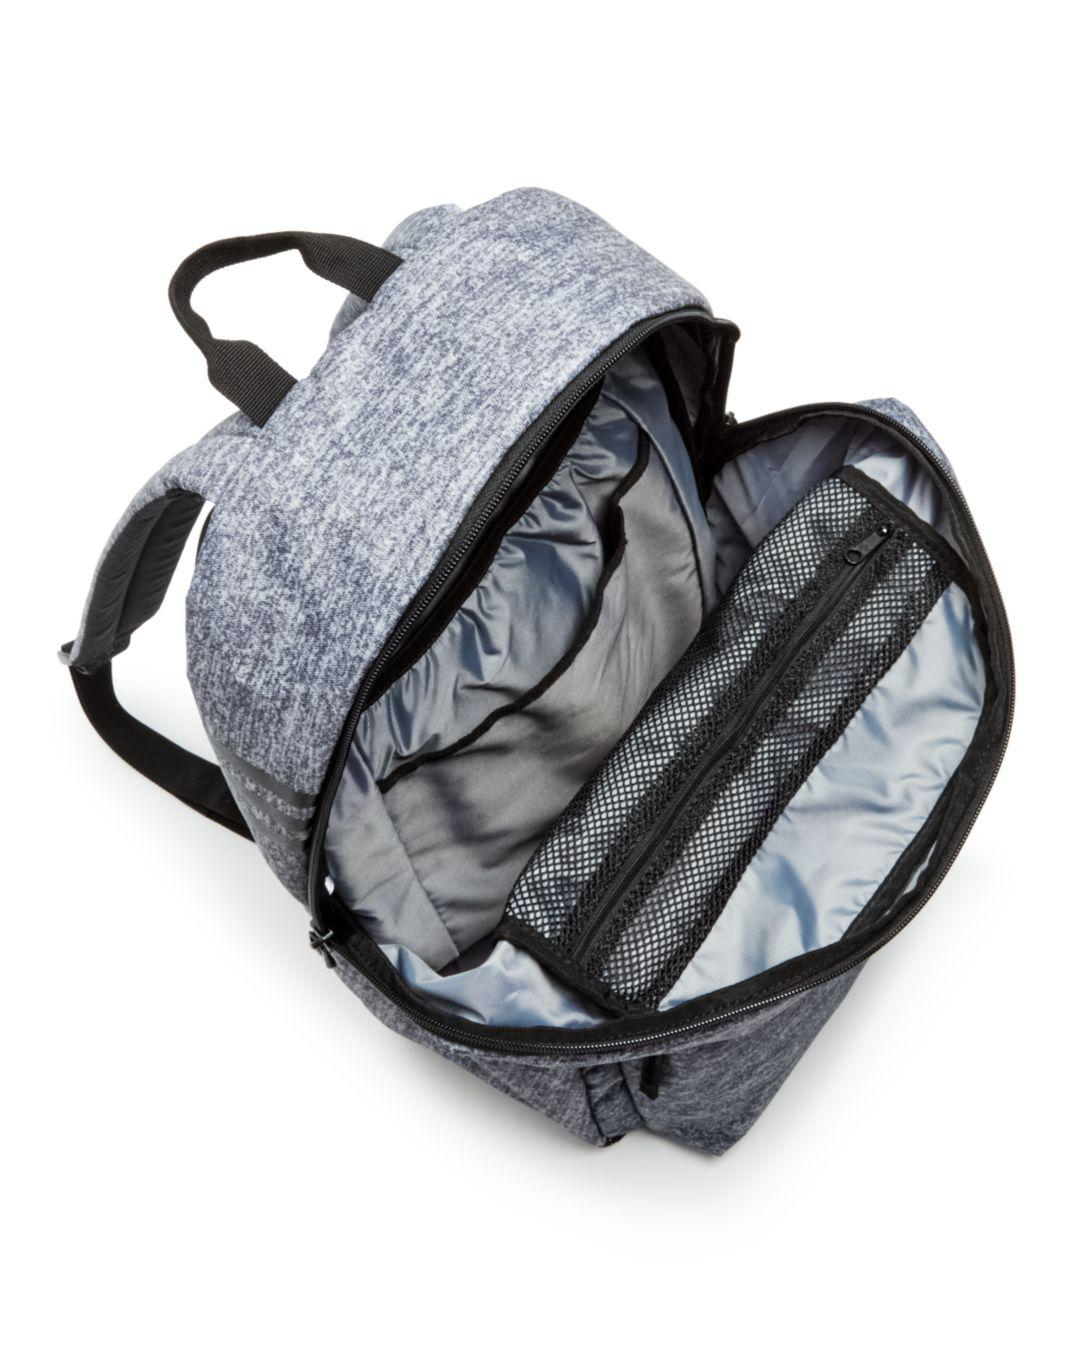 adidas Originals National Heathered Backpack in Gray for Men - Lyst 3d70658a448e9